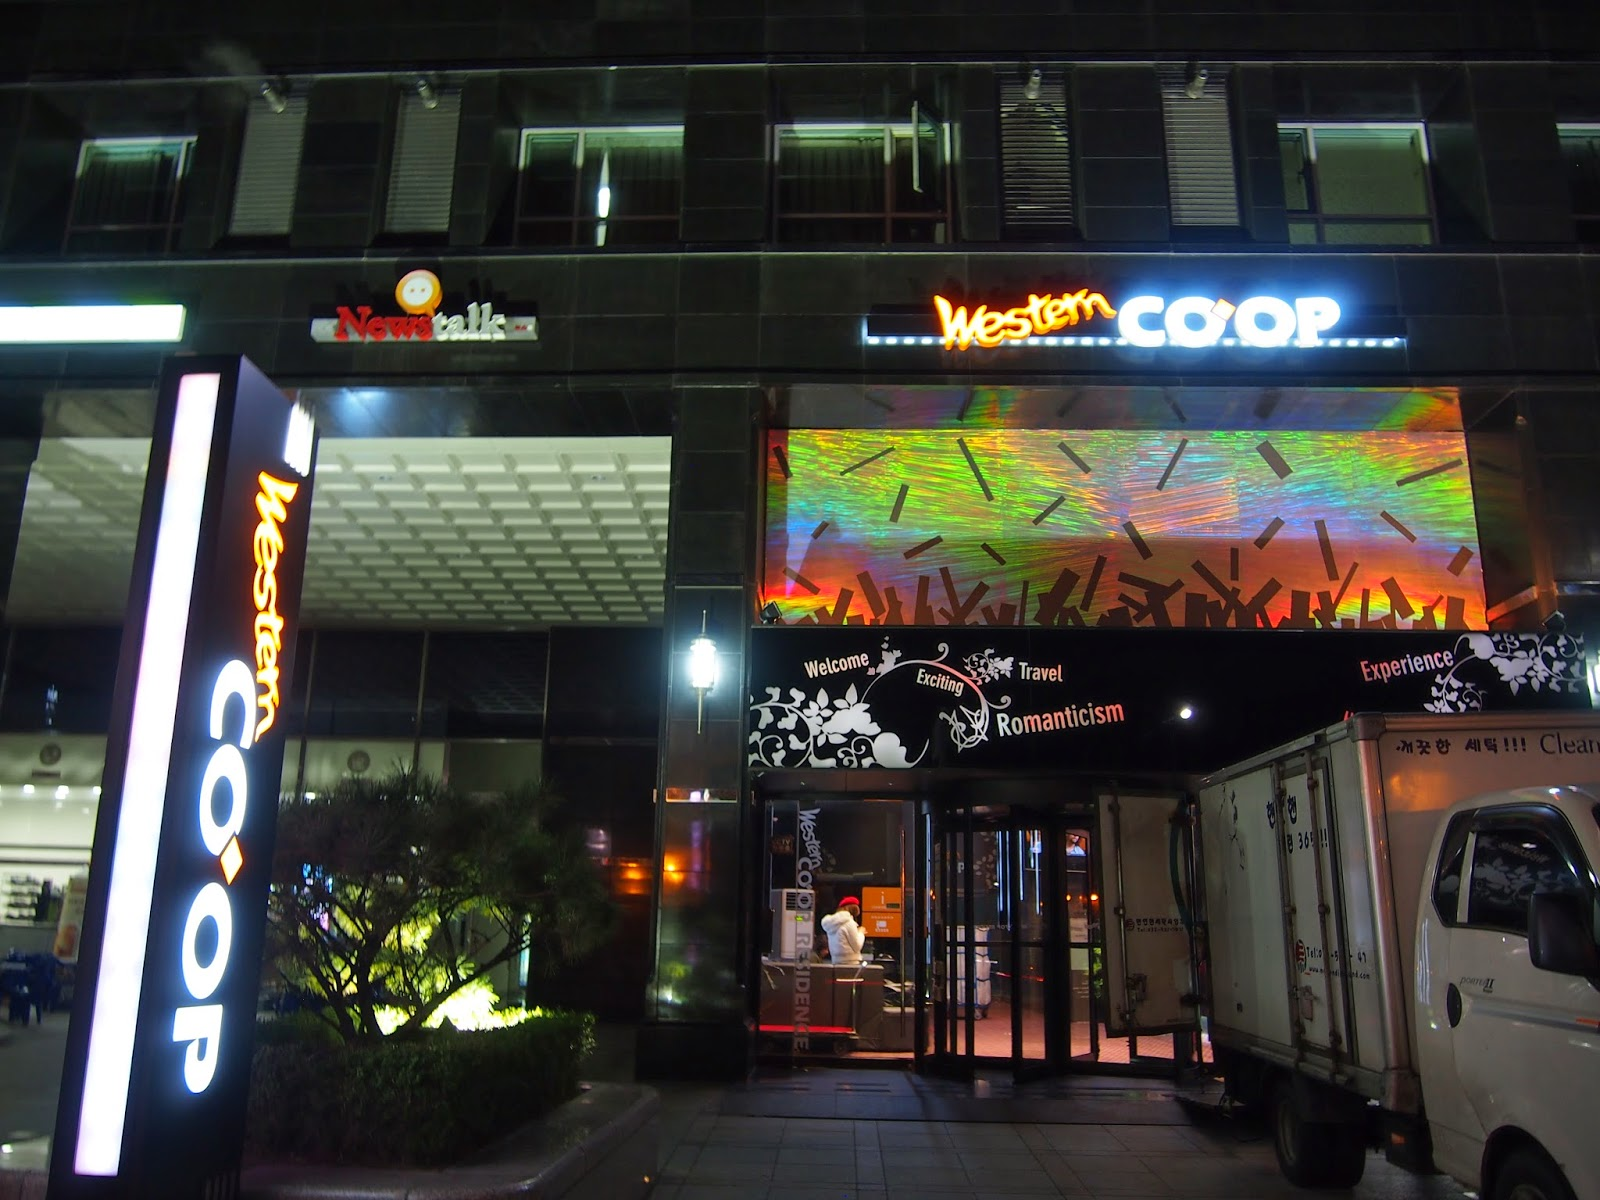 Hotel On Dongdaemun South Korea Seoul Western Co Op Residence Hotel Review A